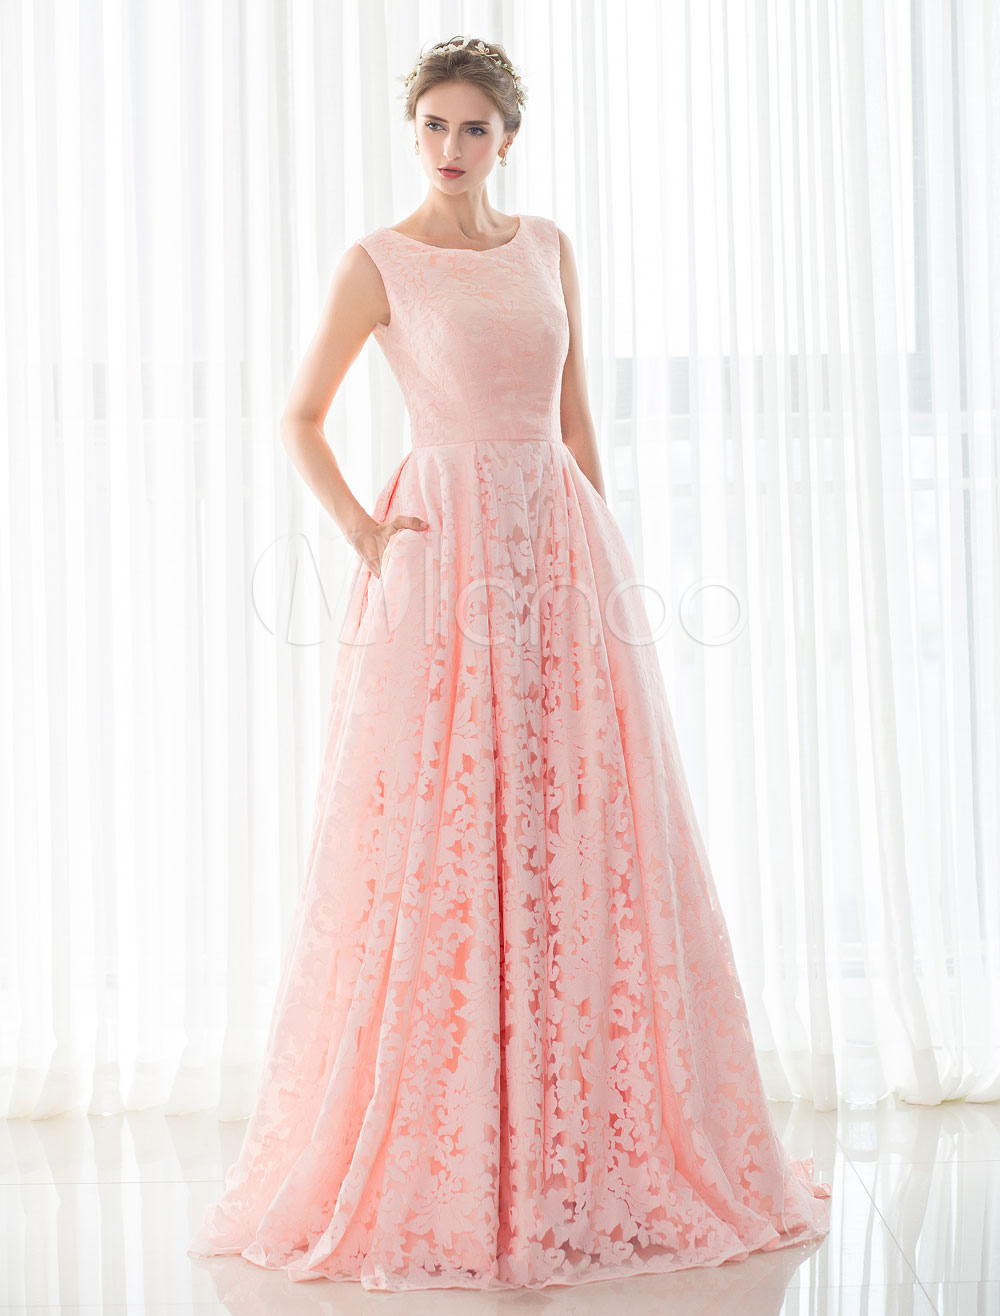 Pink Wedding Dress Lace A-line Court Train Sleeveless Lace-up Bridal Gown With Hand Pockets photo